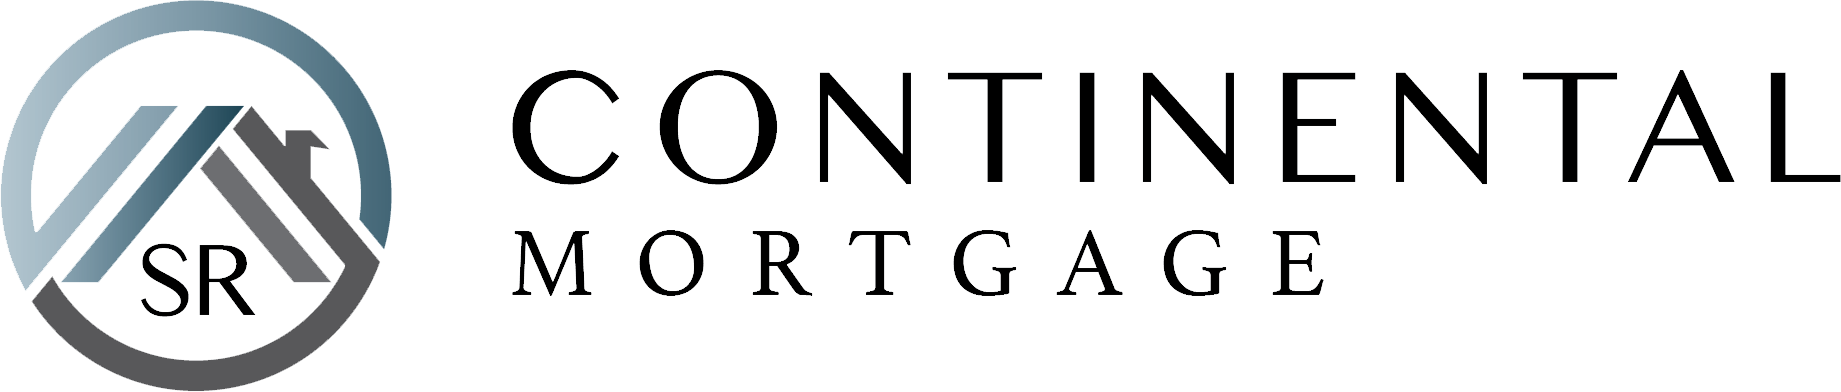 Continental Mortgage